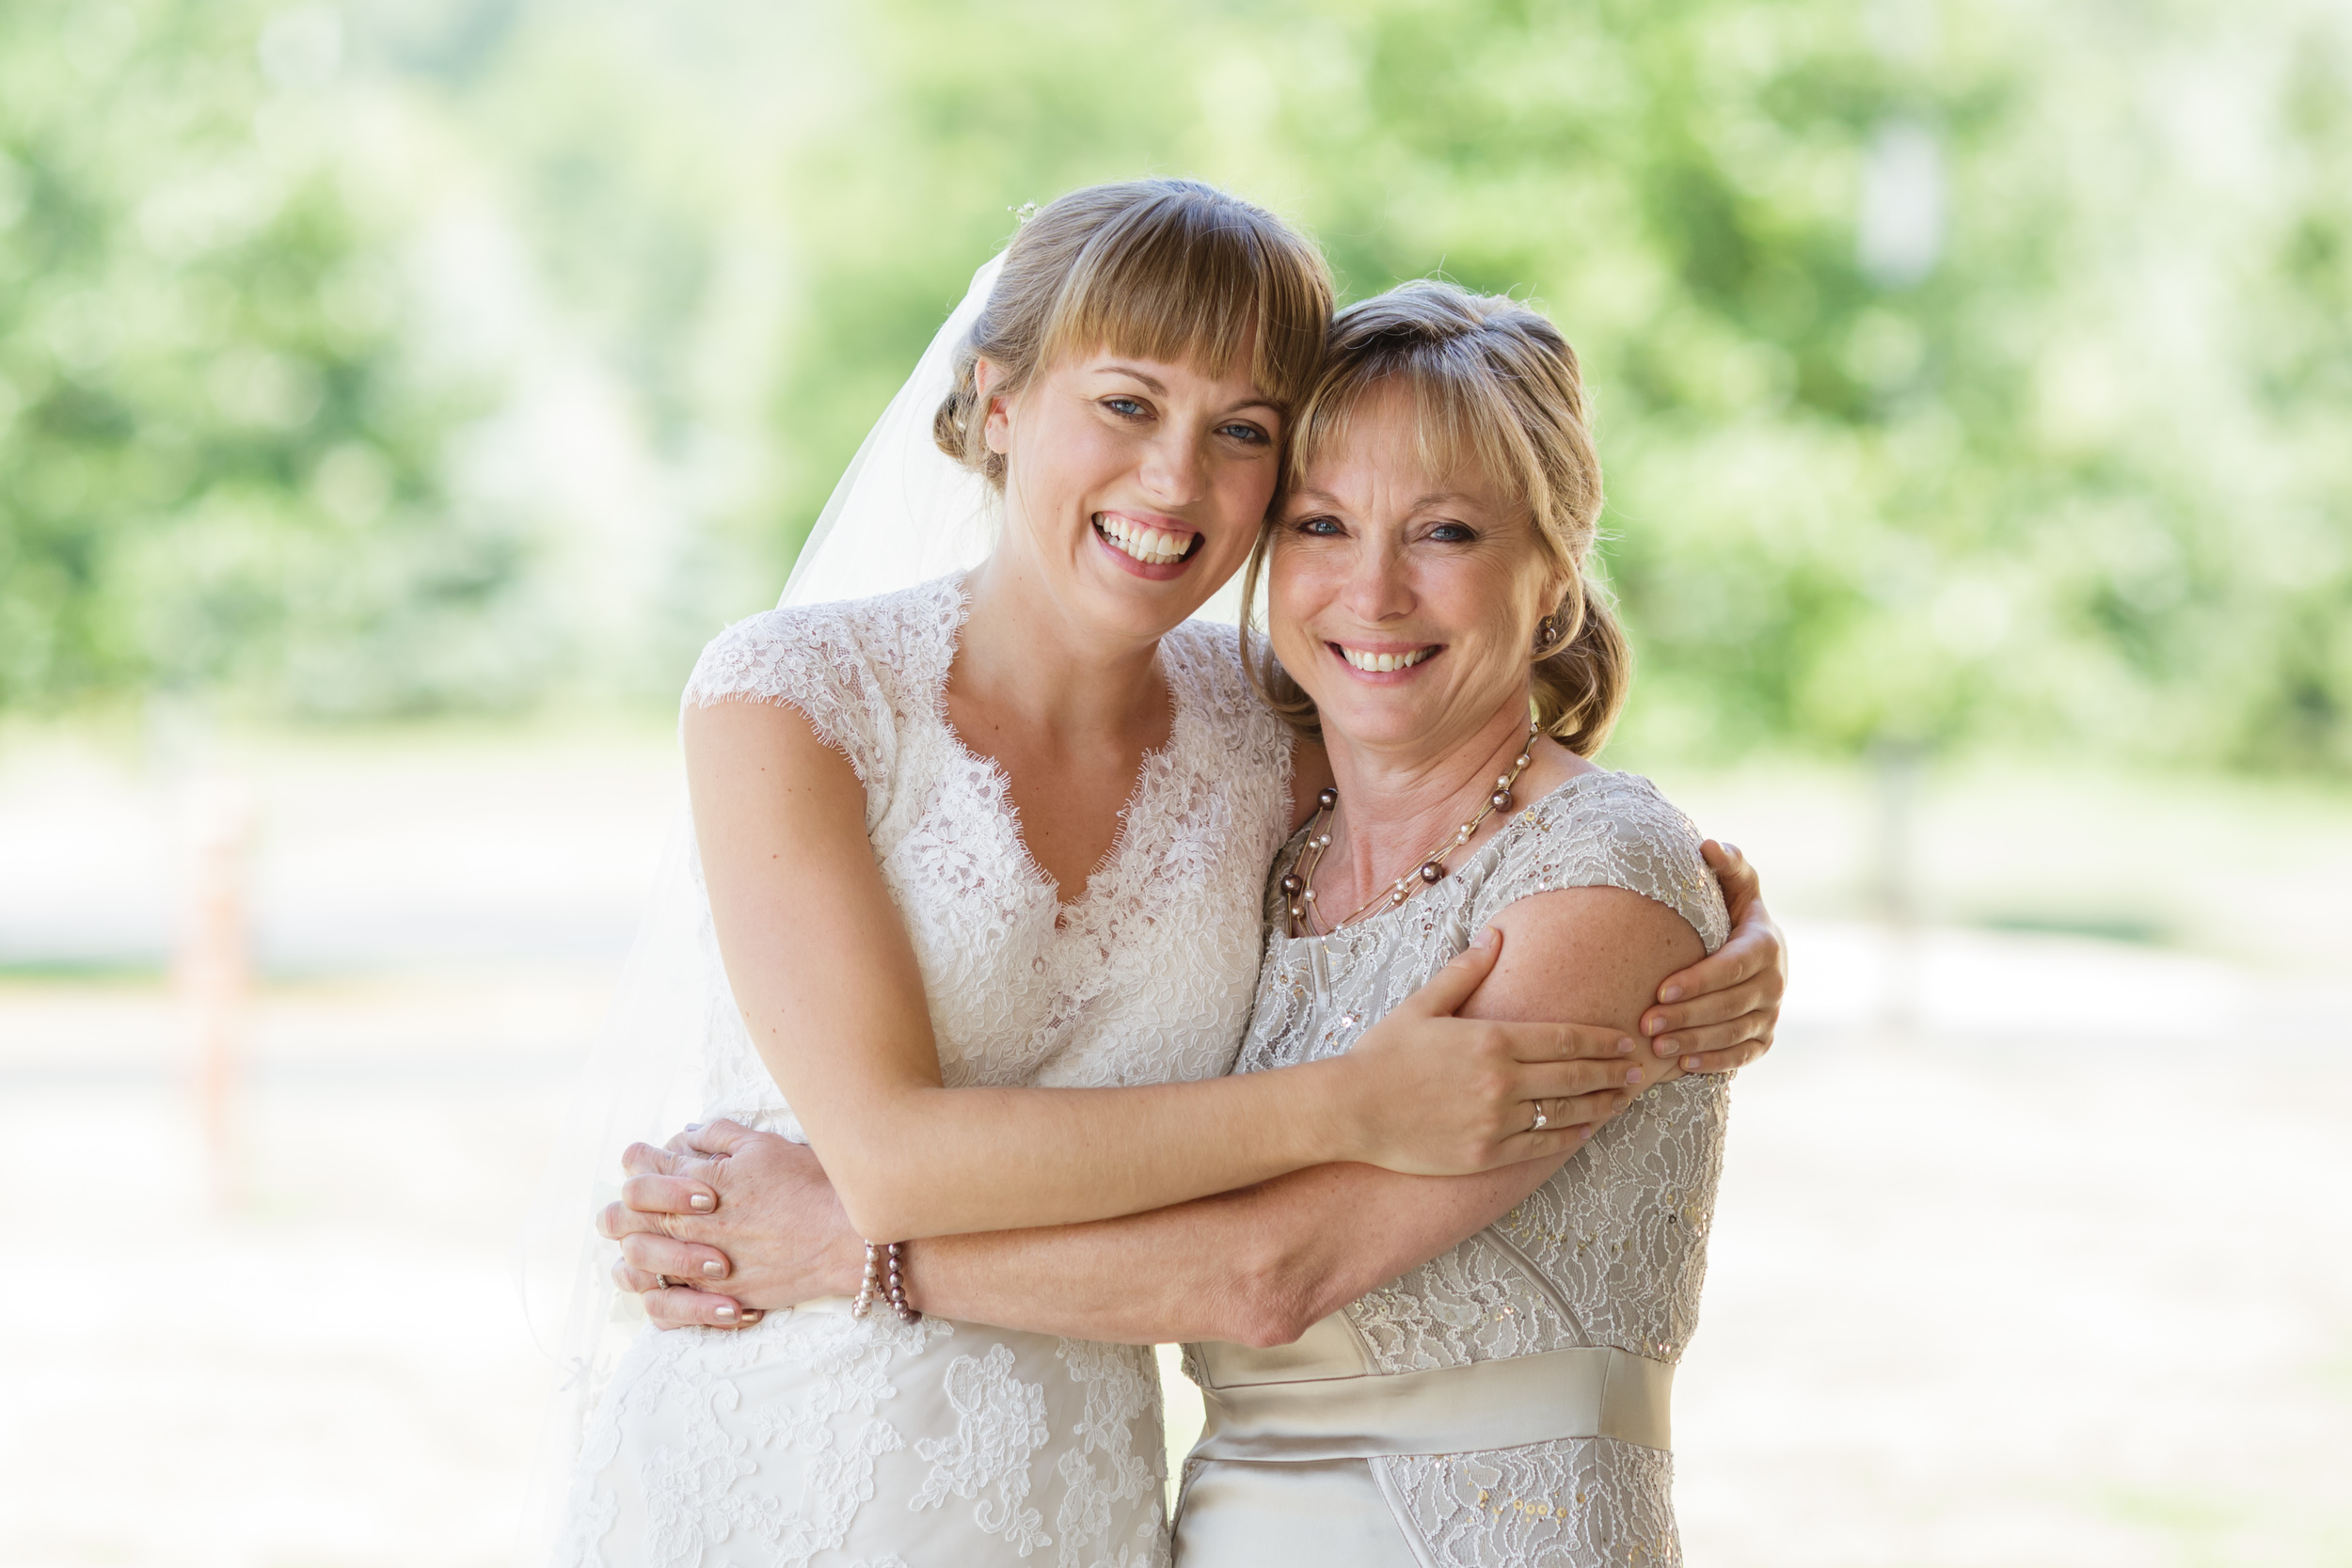 You'd be surprised how few photos of Mother/Daughter happen at weddings. Walking down aisle, First Look, and First Dance - they all belong to Dad. But Mothers and Daughters? *sigh* Worth capturing, worth celebrating.